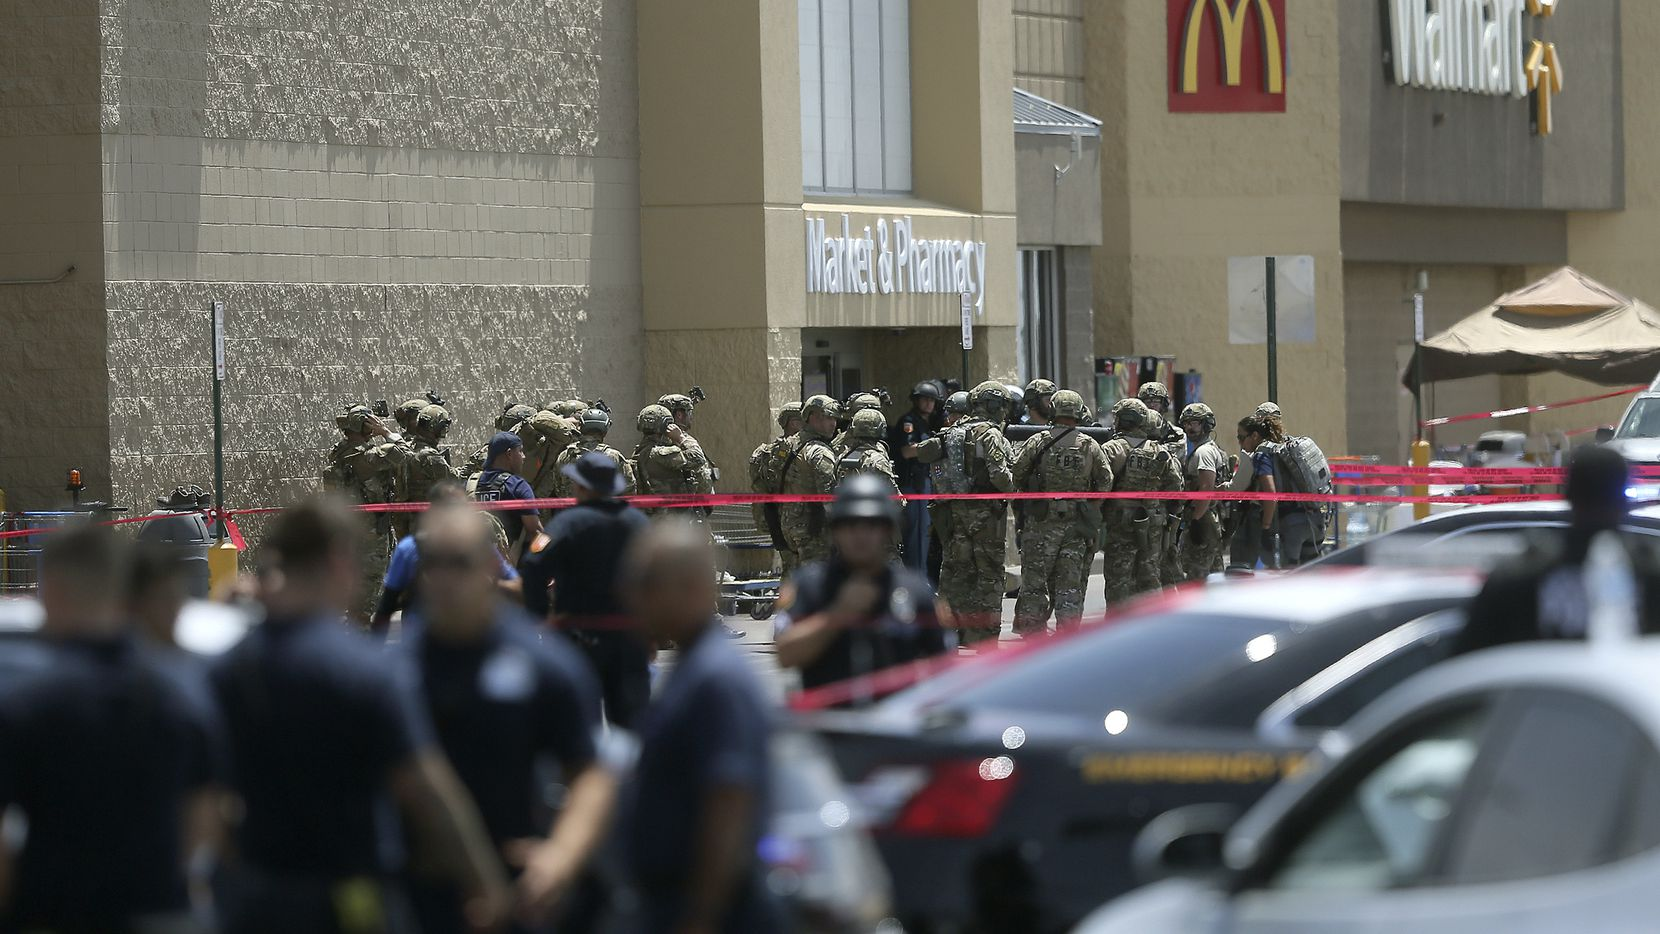 Law enforcement agencies respond to the mass shooting at a Walmart in El Paso on Aug. 3, 2019. Patrick Crusius was indicted for the killing of 22 people in the mass shooting in state court and he now faces federal hate crime charges, too.